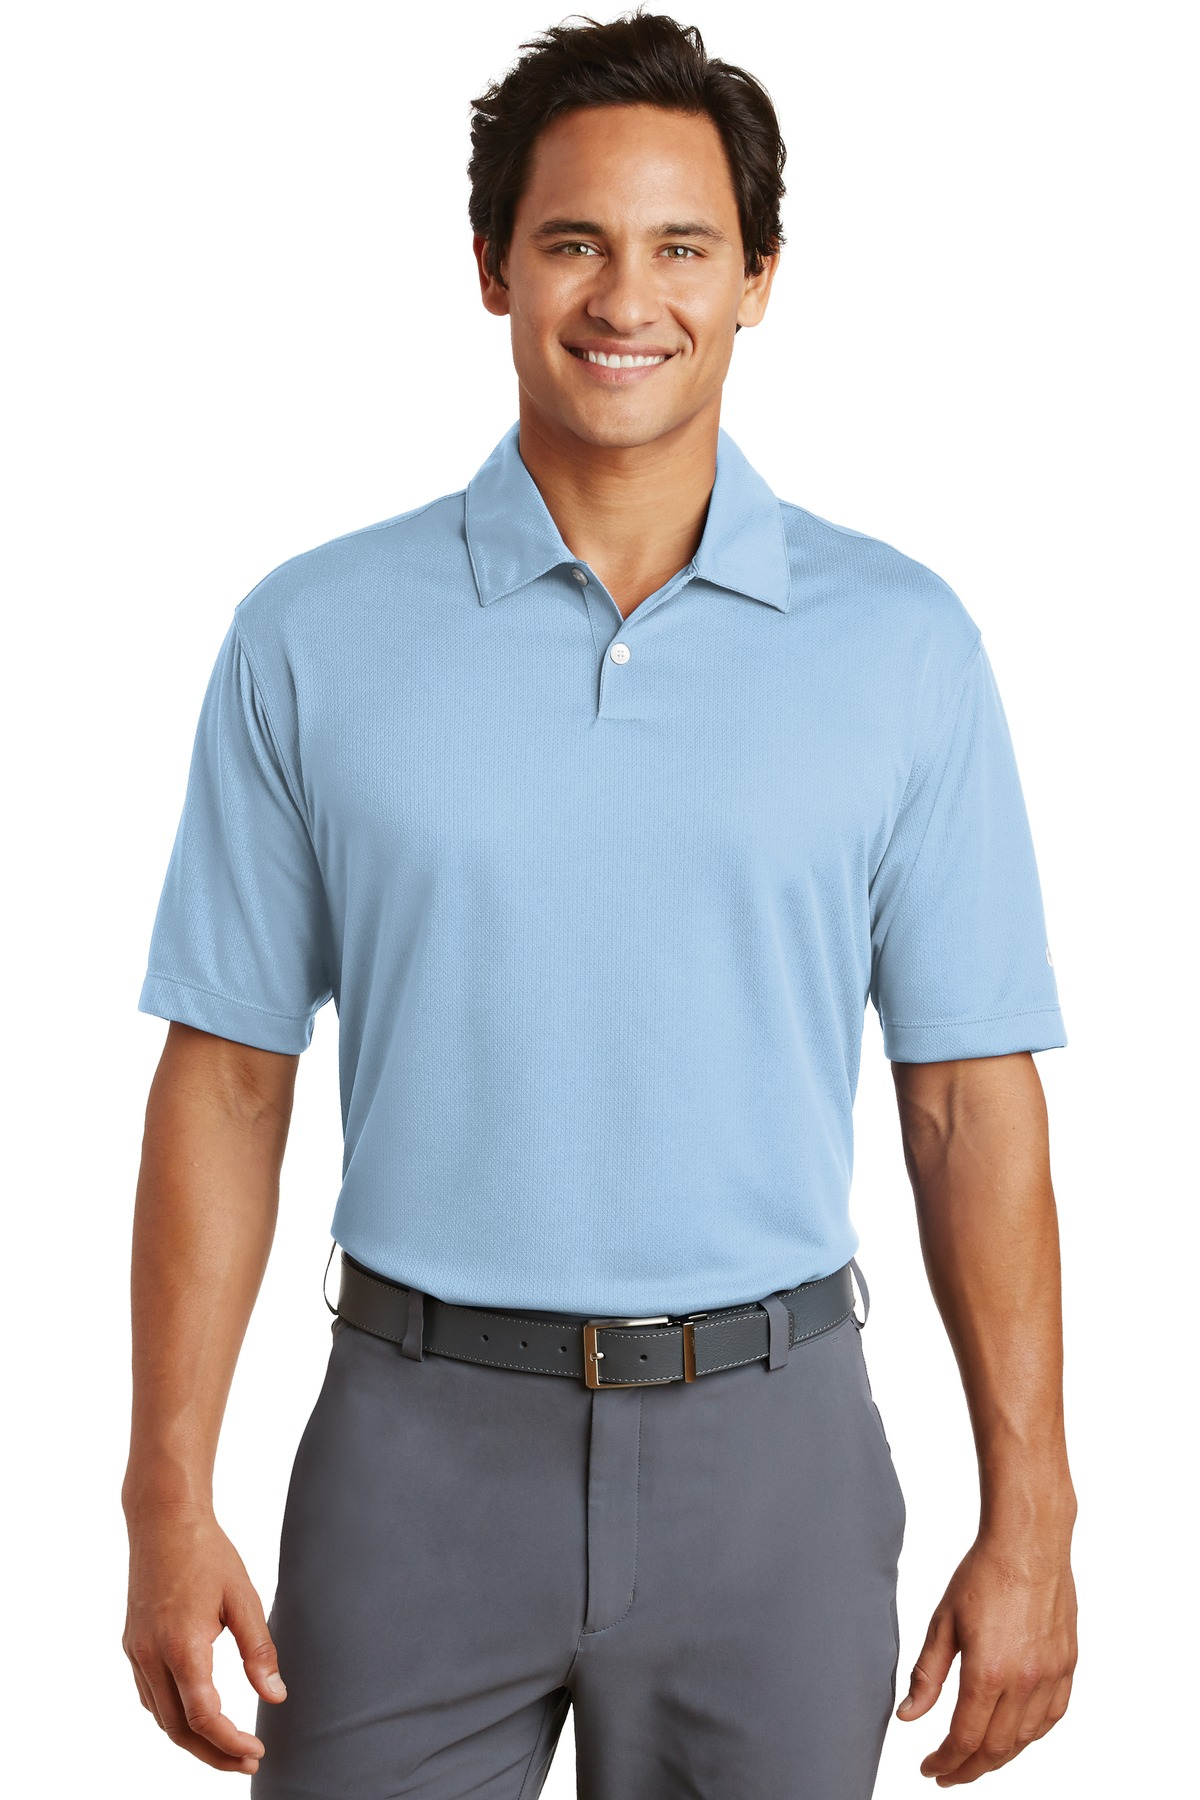 Nike Dri-FIT Pebble Texture Polo. 373749 - Cirrus Blue